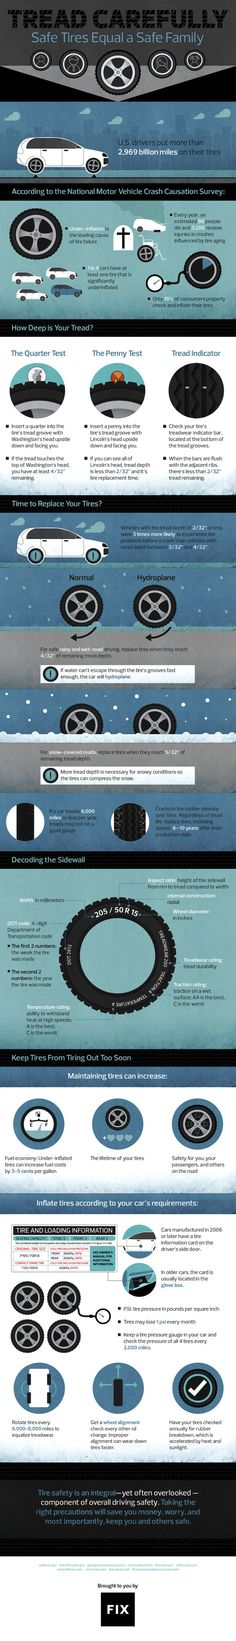 from lifehacker: Everything You Need to Know About Tire Safety In One Handy Graphic